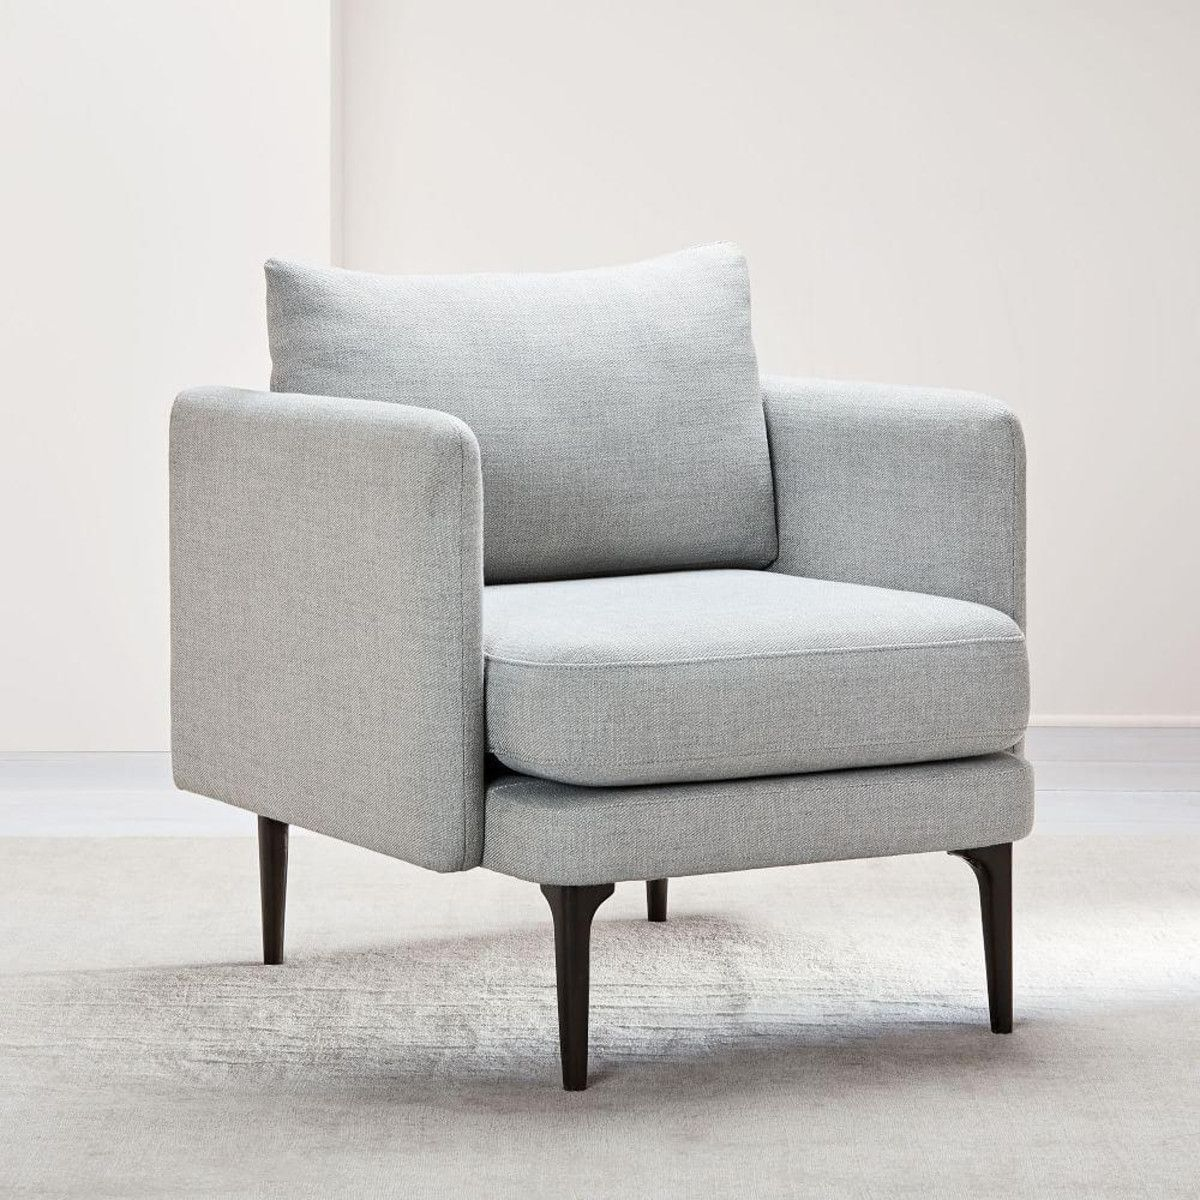 44+ Ikea living room chairs sale information